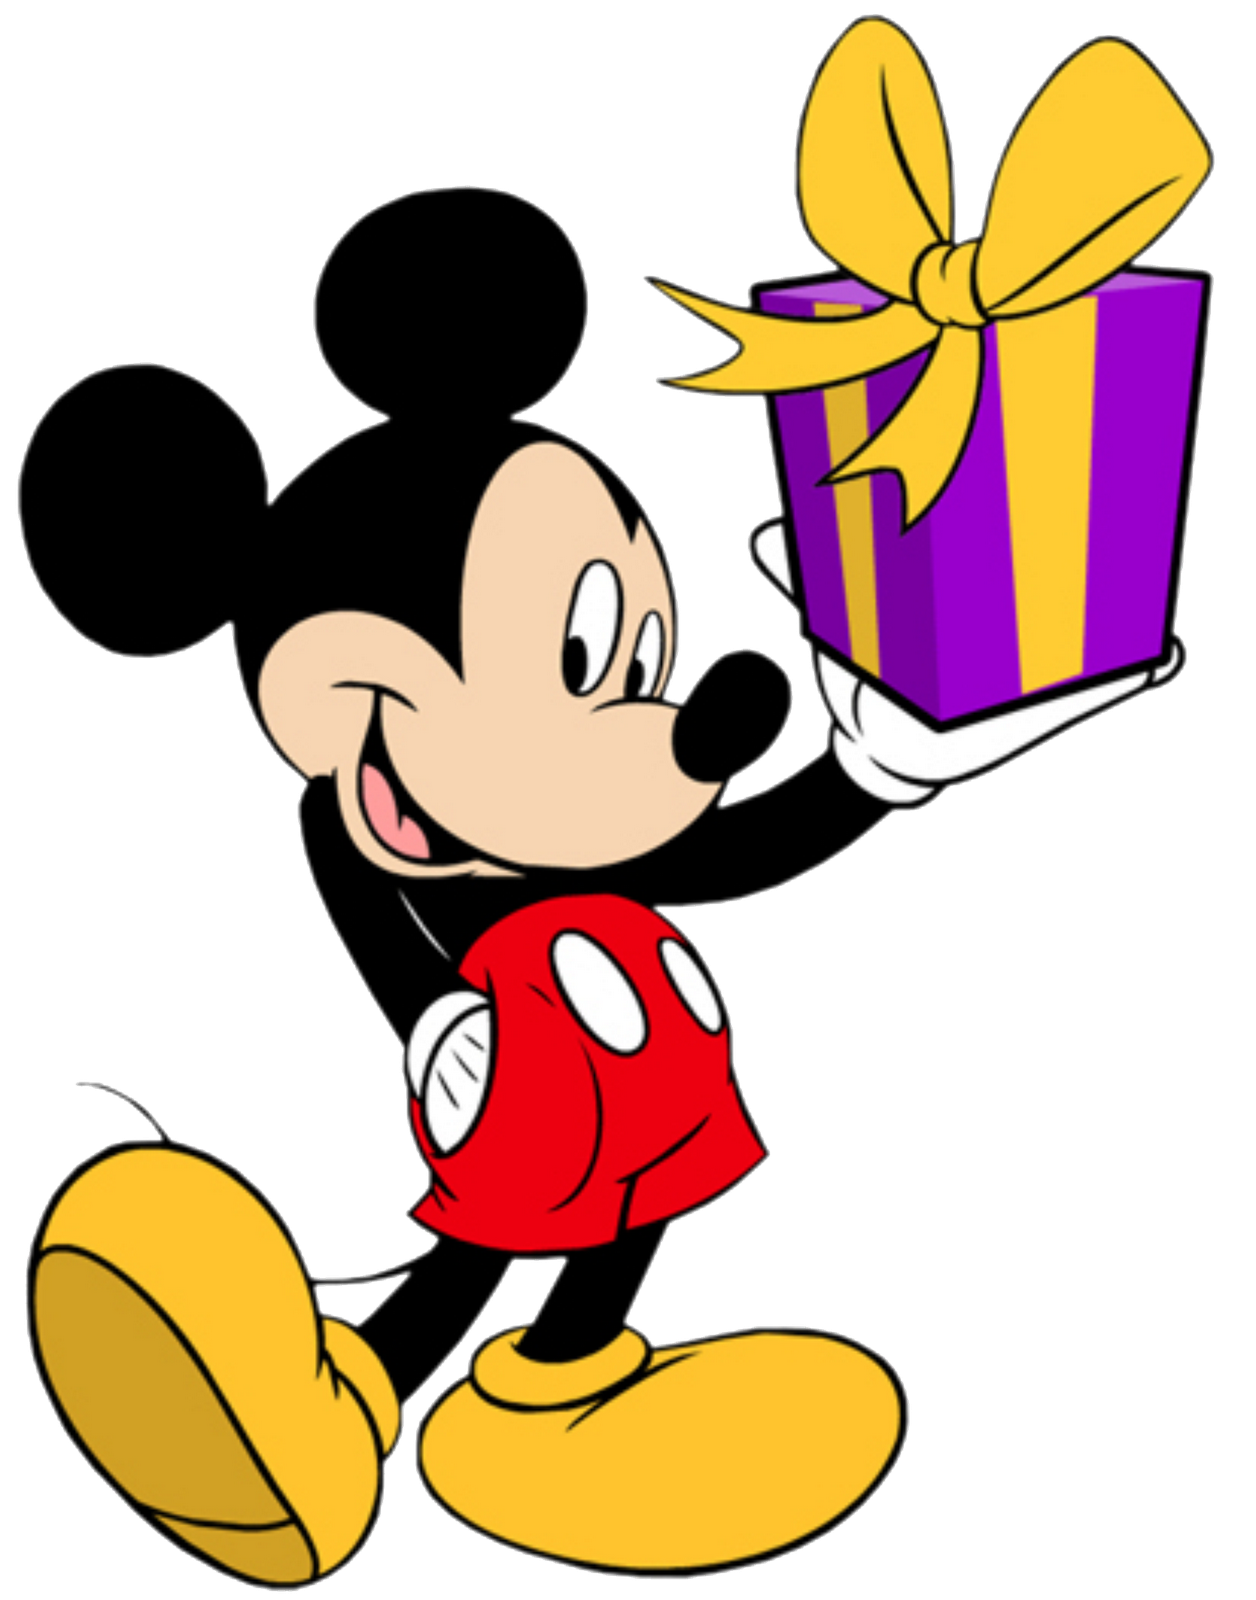 Mickey e minnie png. Free image